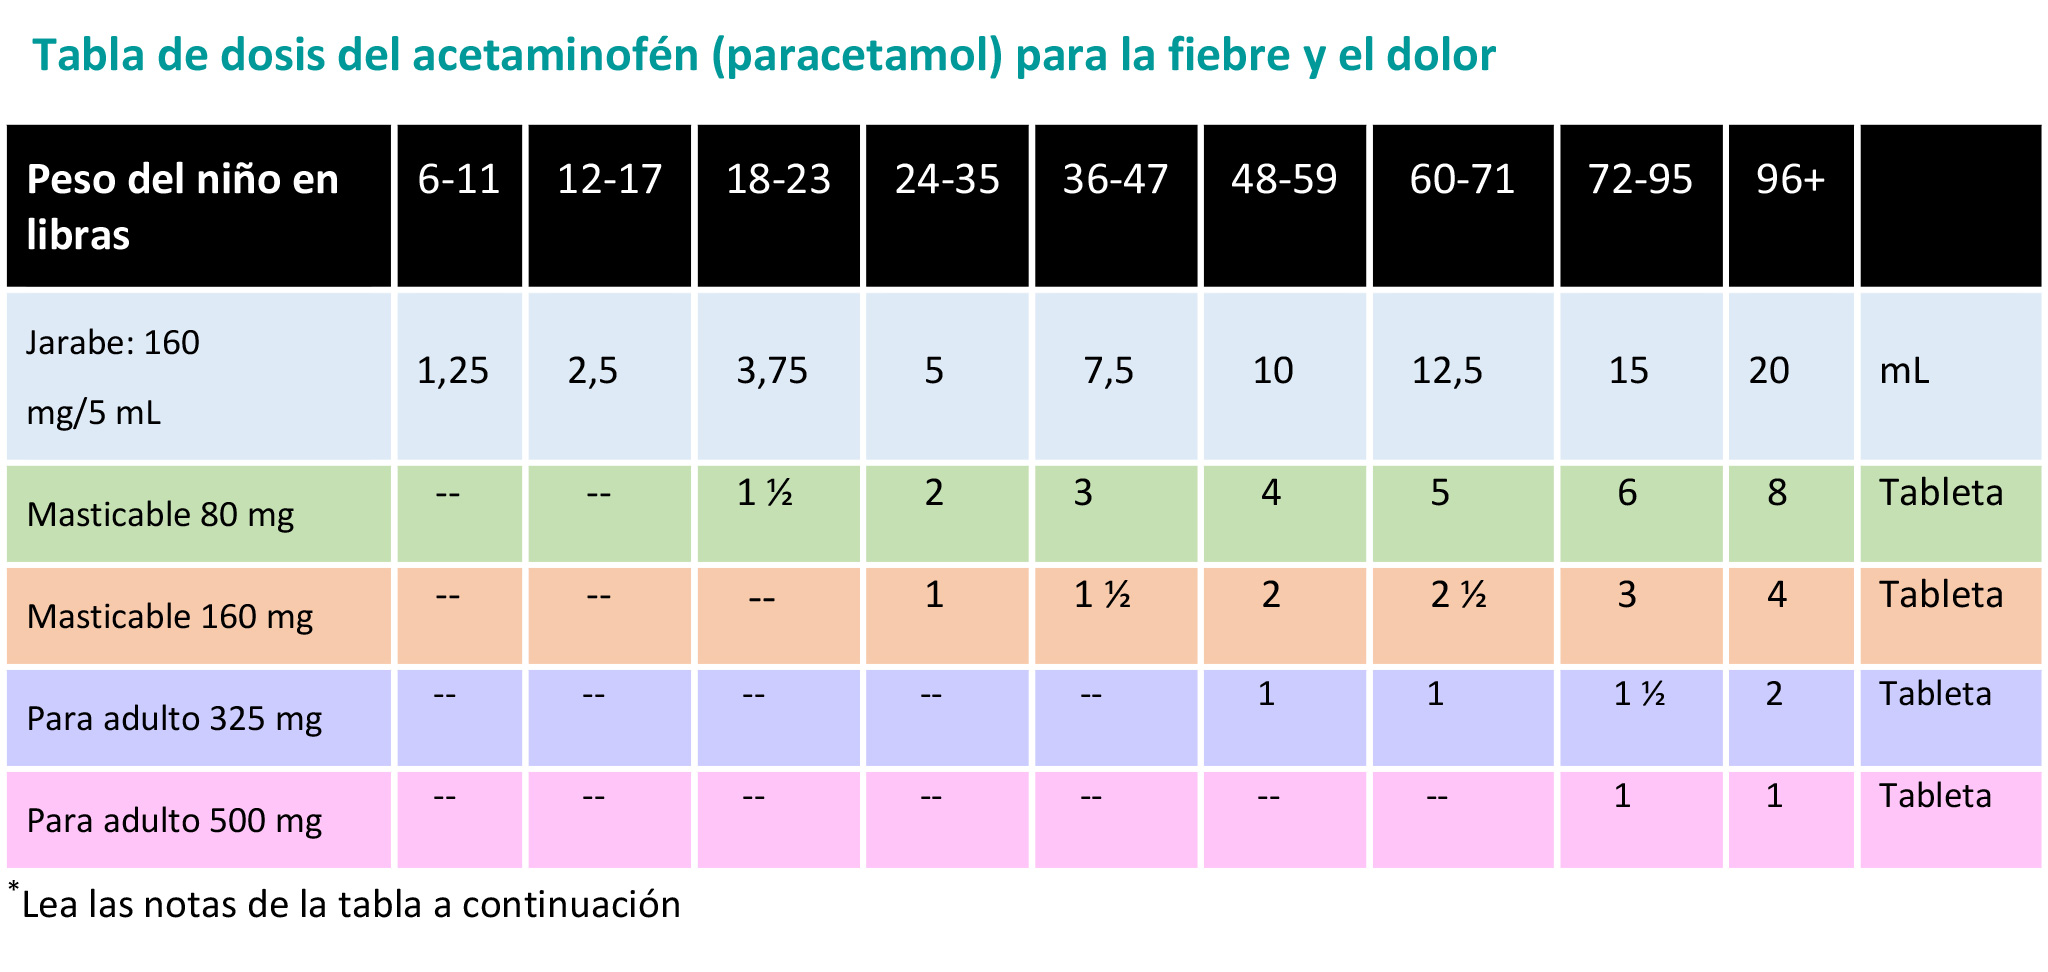 https://www.healthychildren.org/SiteCollectionImagesArticleImages/Acetaminof%C3%A9nTabla_es.jpg